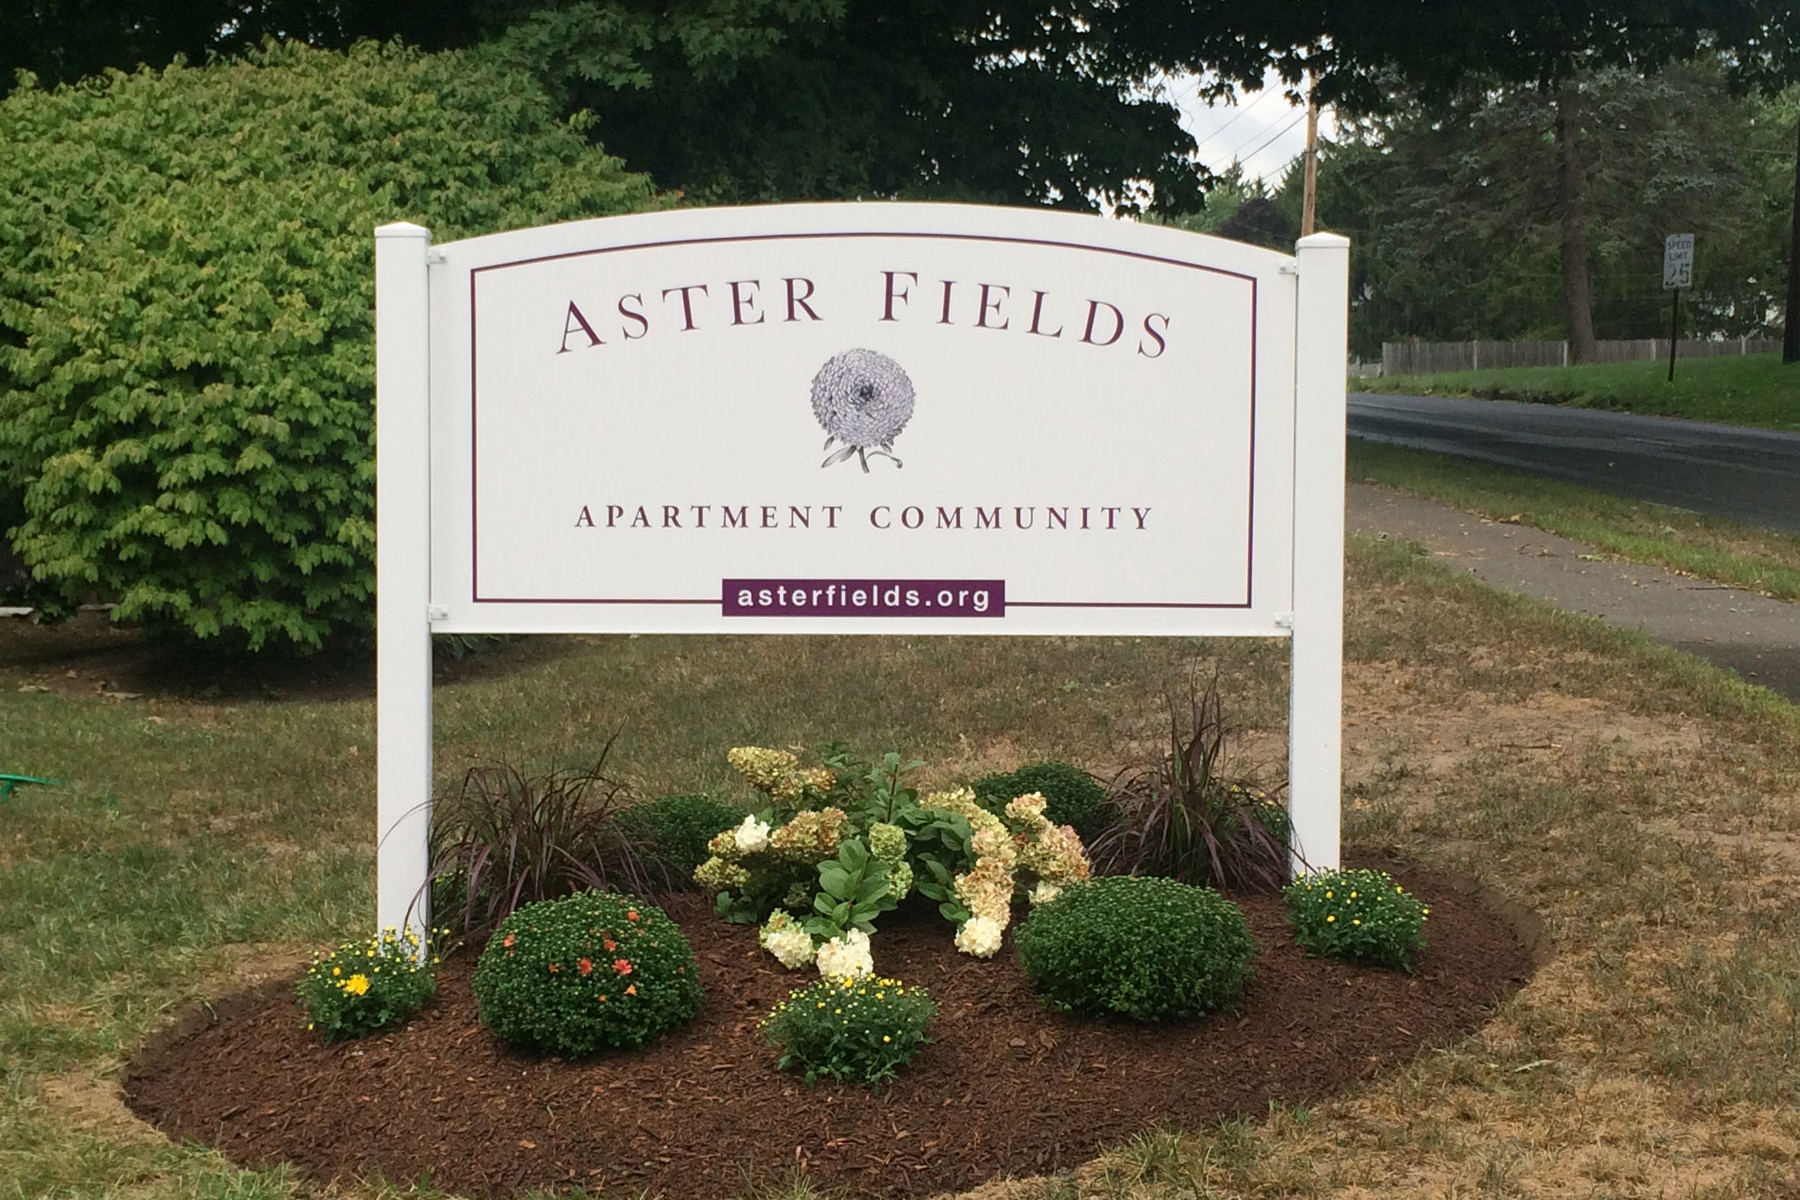 Sustaining a park-like atmosphere, Aster Fields offers bird and bee-friendly landscaping, an outdoor picnic and grill area, and a community garden.